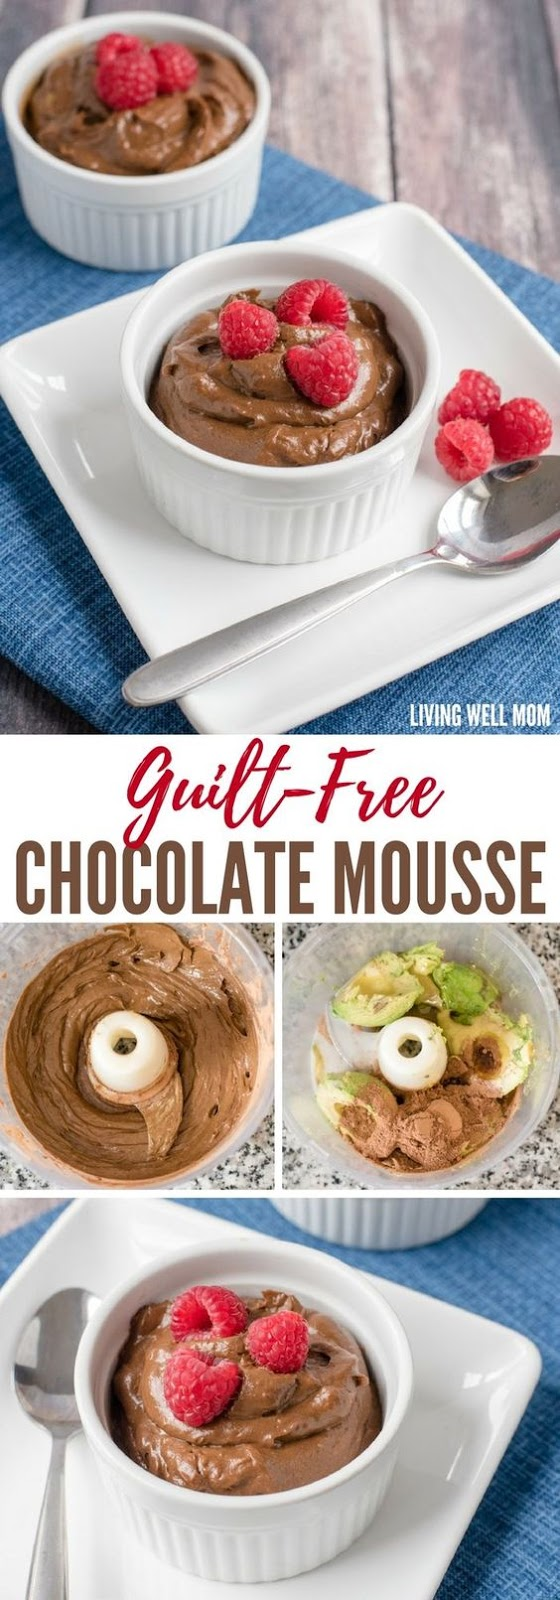 Guilt-Free Healthy Chocolate Mousse #guiltfree #healthy #chocolate #mousse #cake #cakerecipes #dessert #dessertrecipes